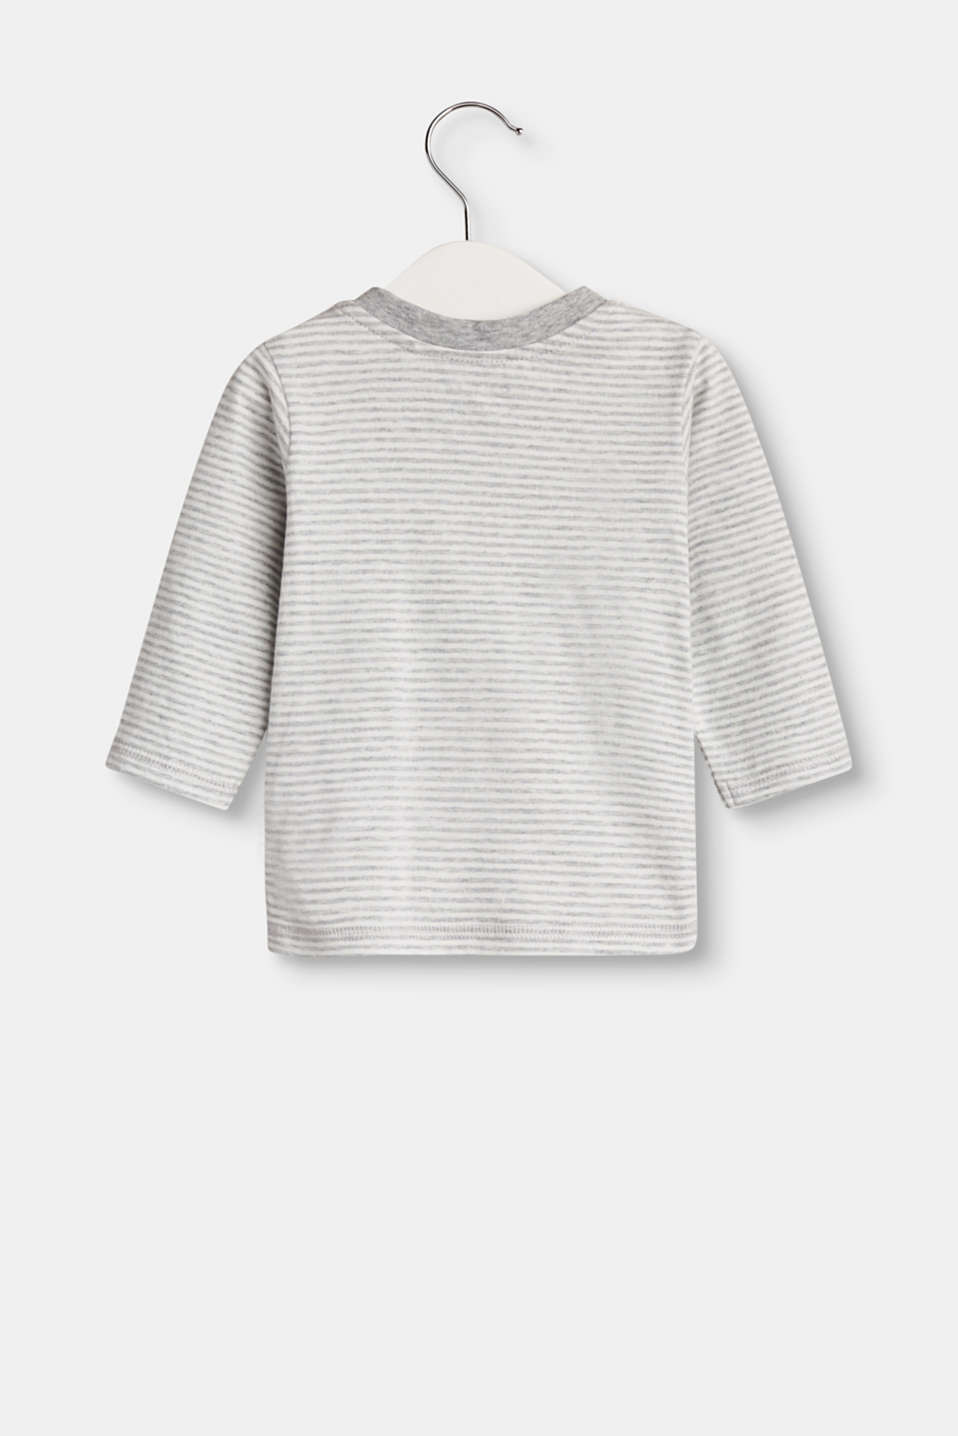 Striped long sleeve top with organic cotton